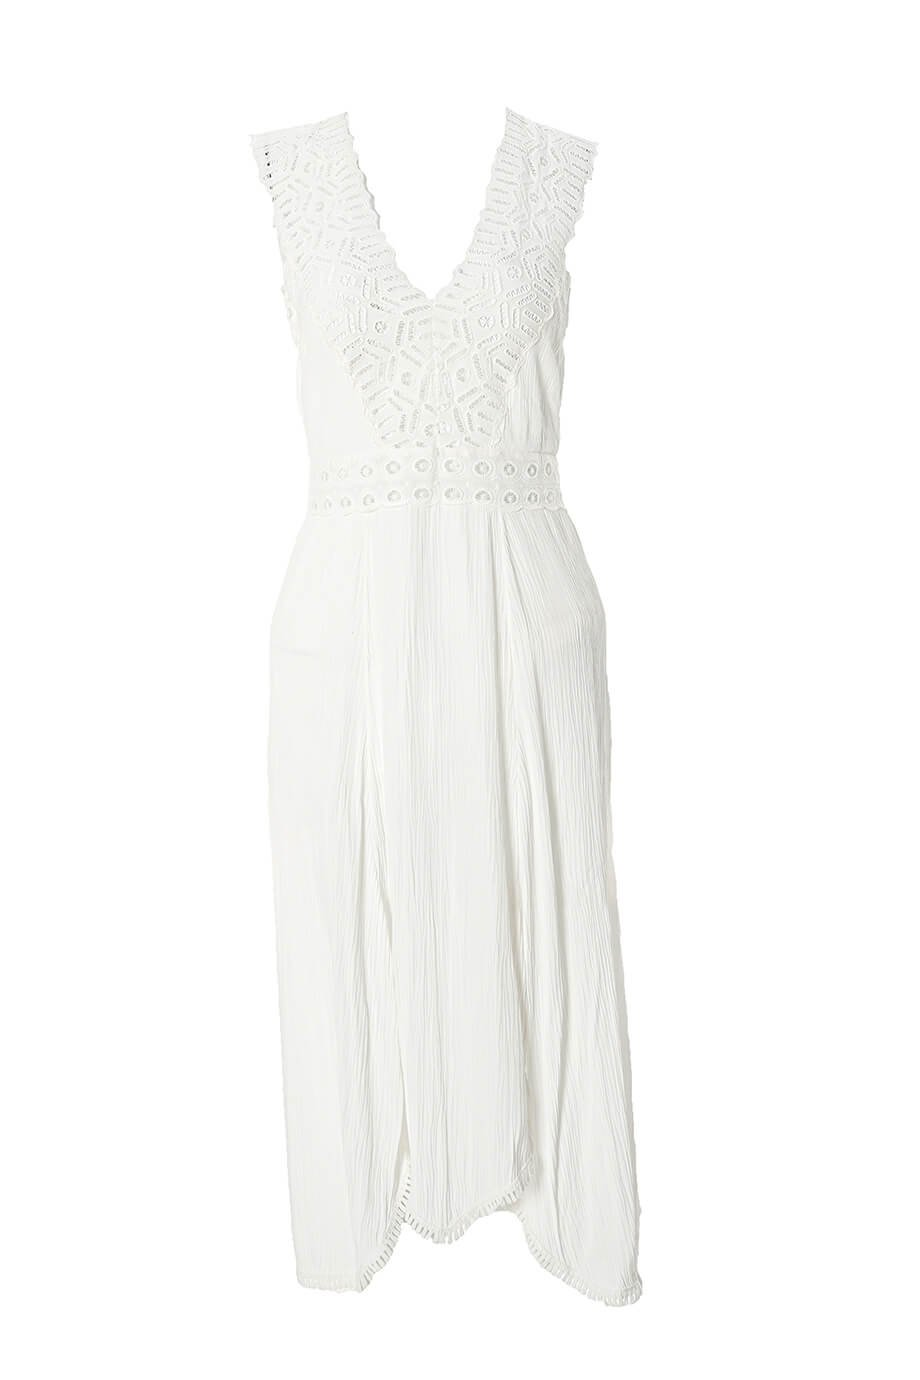 DEMETER LACE MAXI DRESS